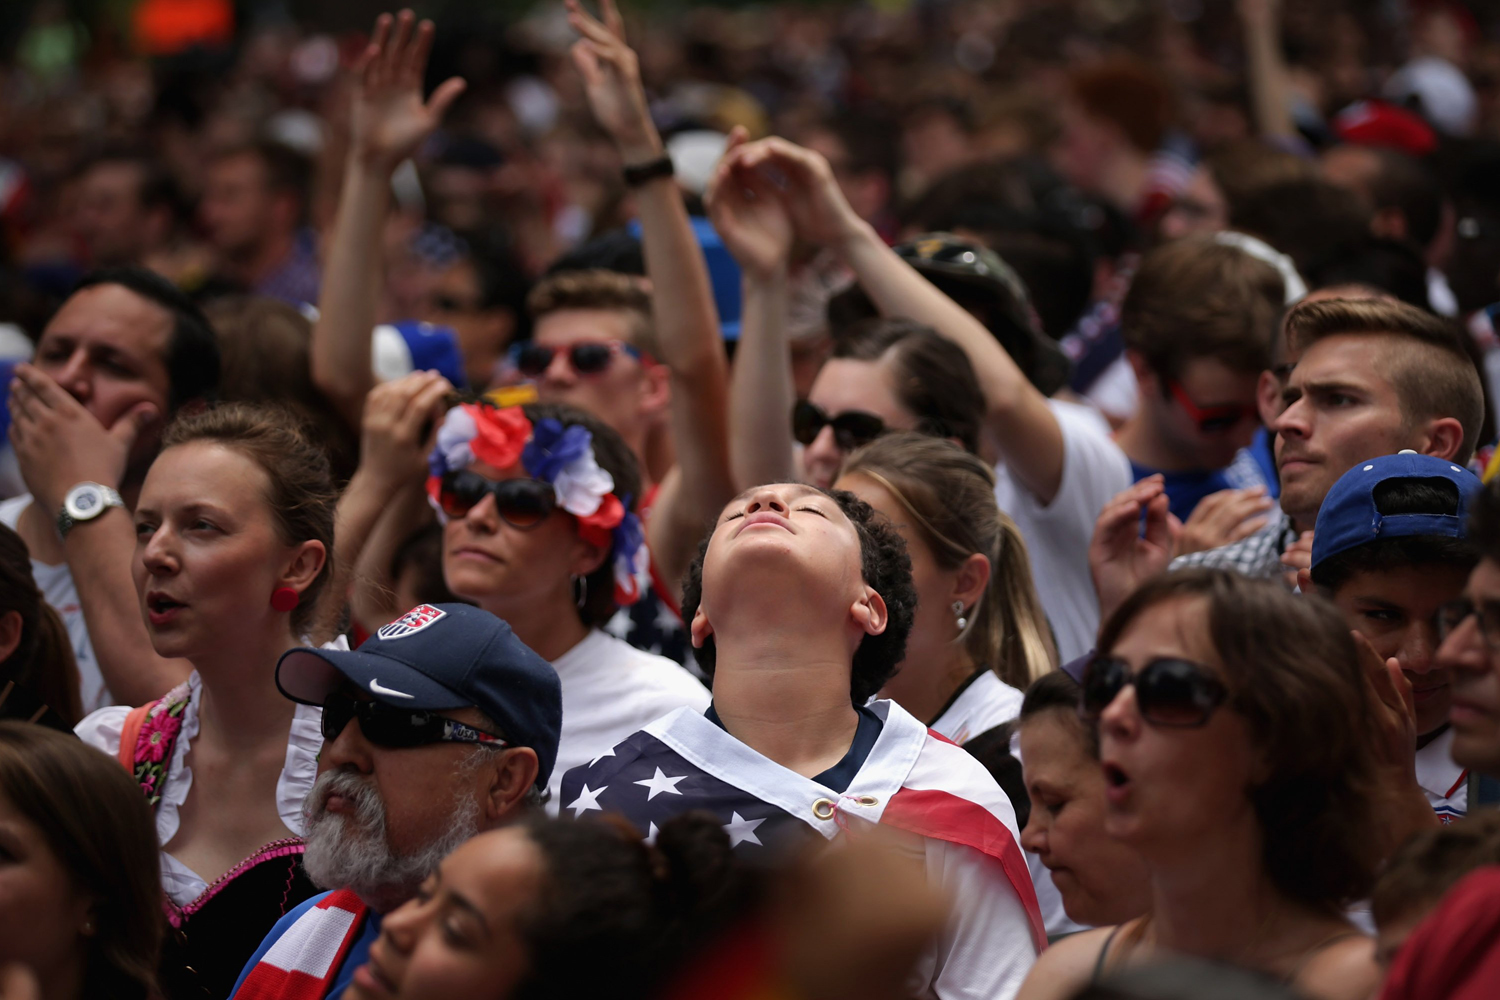 Jun. 26, 2014.  Thousands of soccer fans gather in Dupont Circle park to watch the US v Germany World Cup match  in Washington, United States. The German Embassy in the United States provided two large-screen televisions for fans of both teams to watch the last game of the 'Group of Death' match.